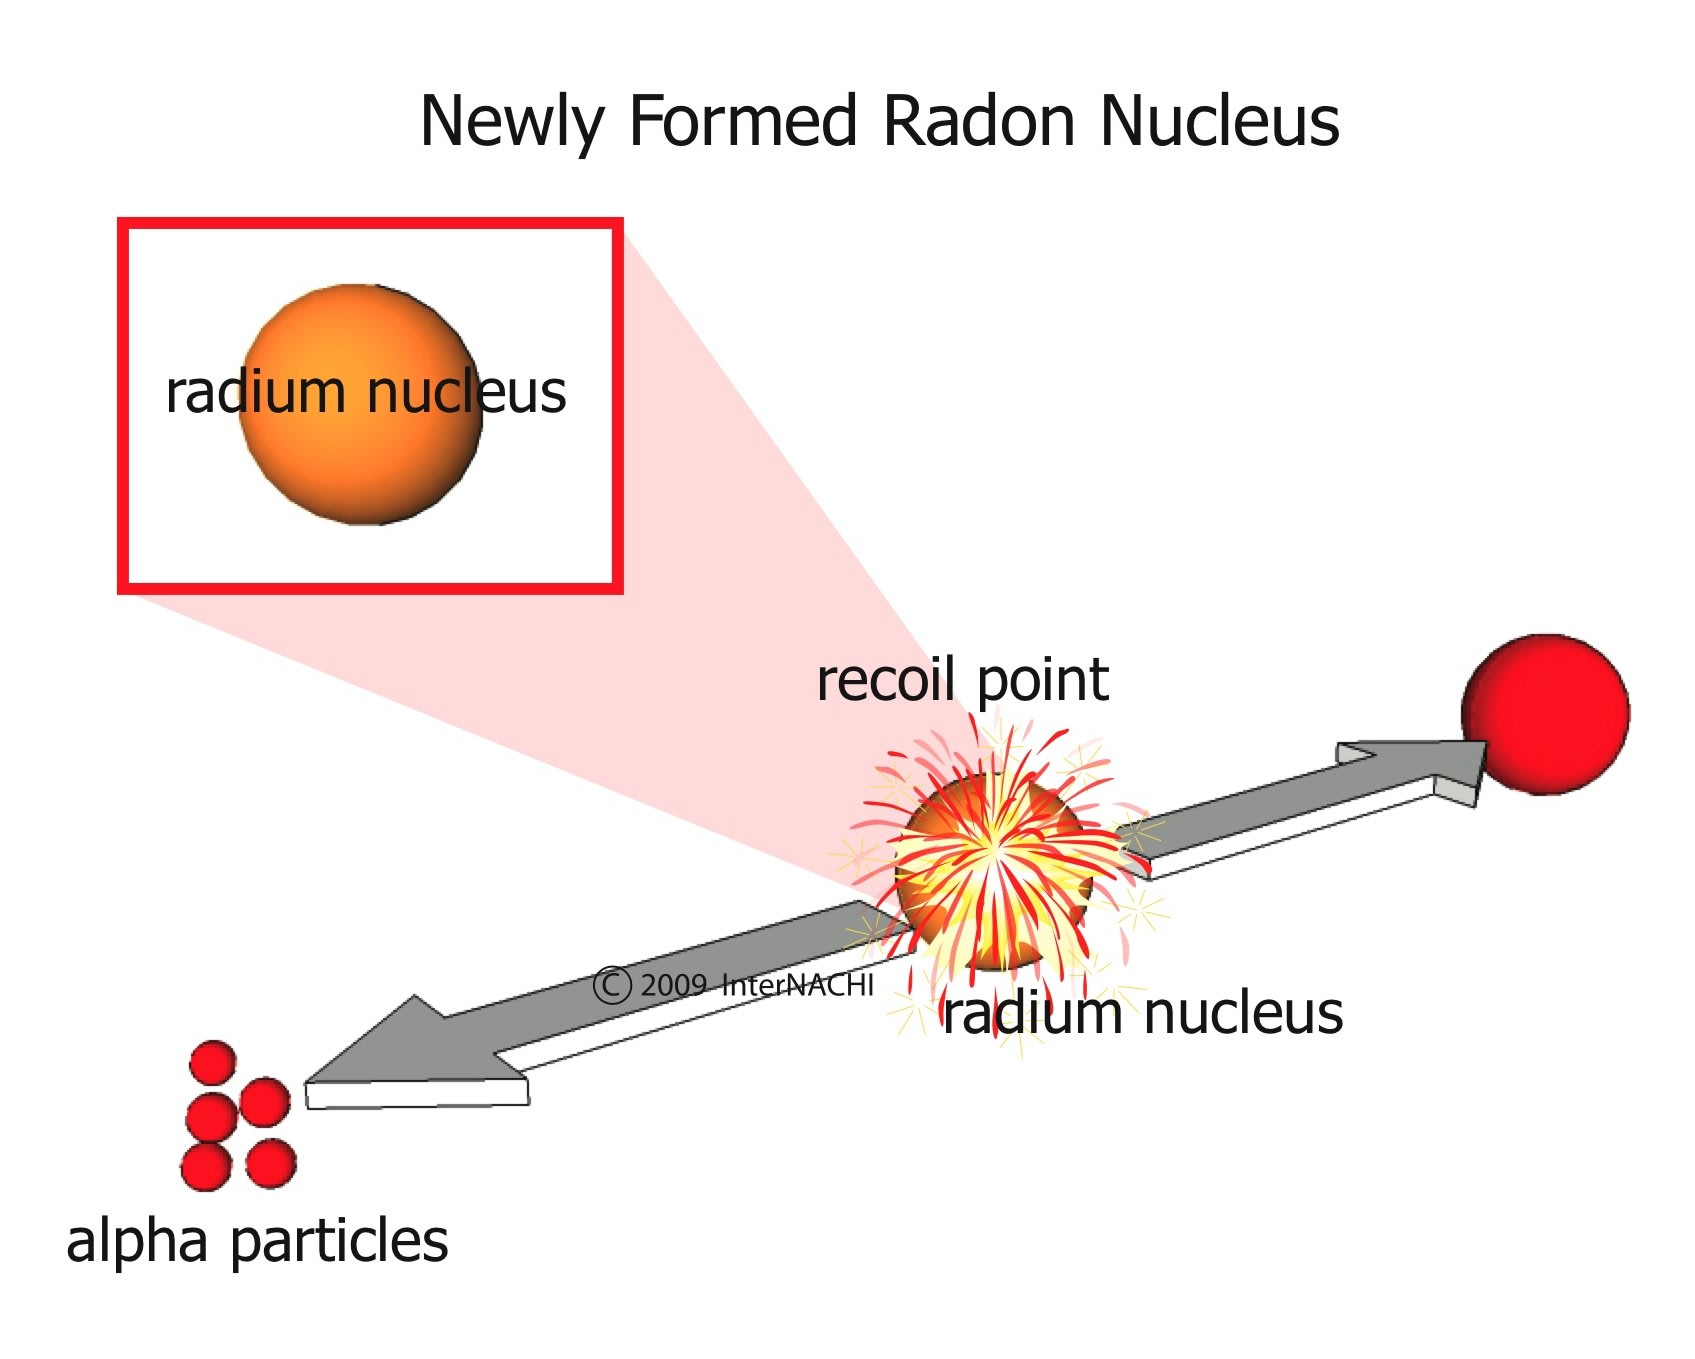 Newly formed radon nucleus.